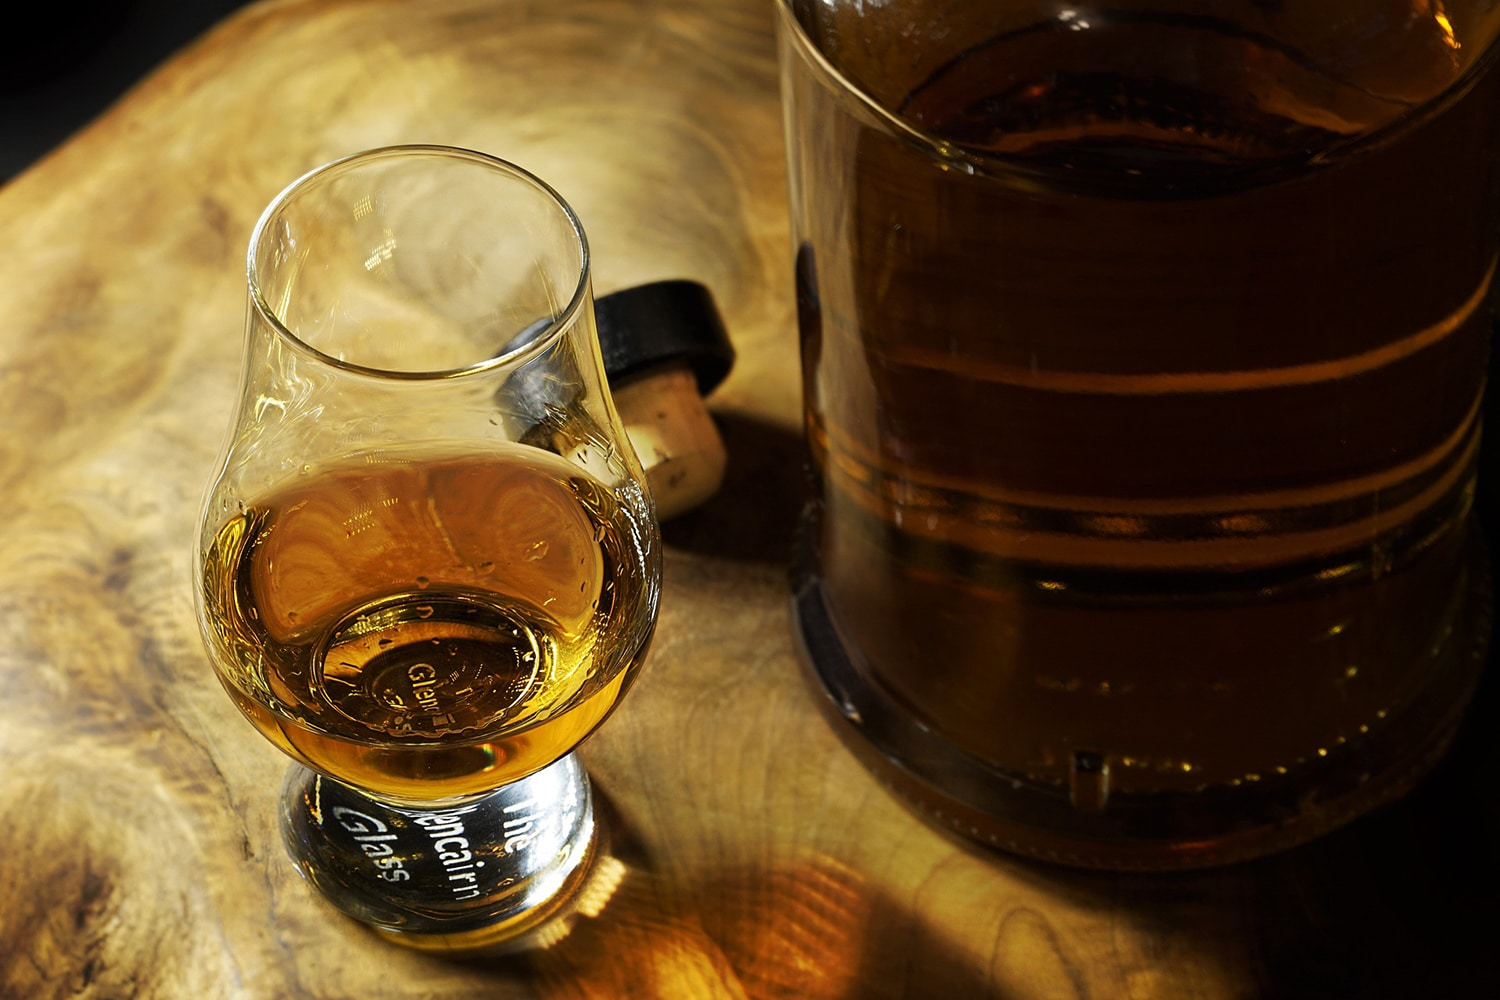 15 Best Rye Whiskeys To Add to Your Liquor Cabinet